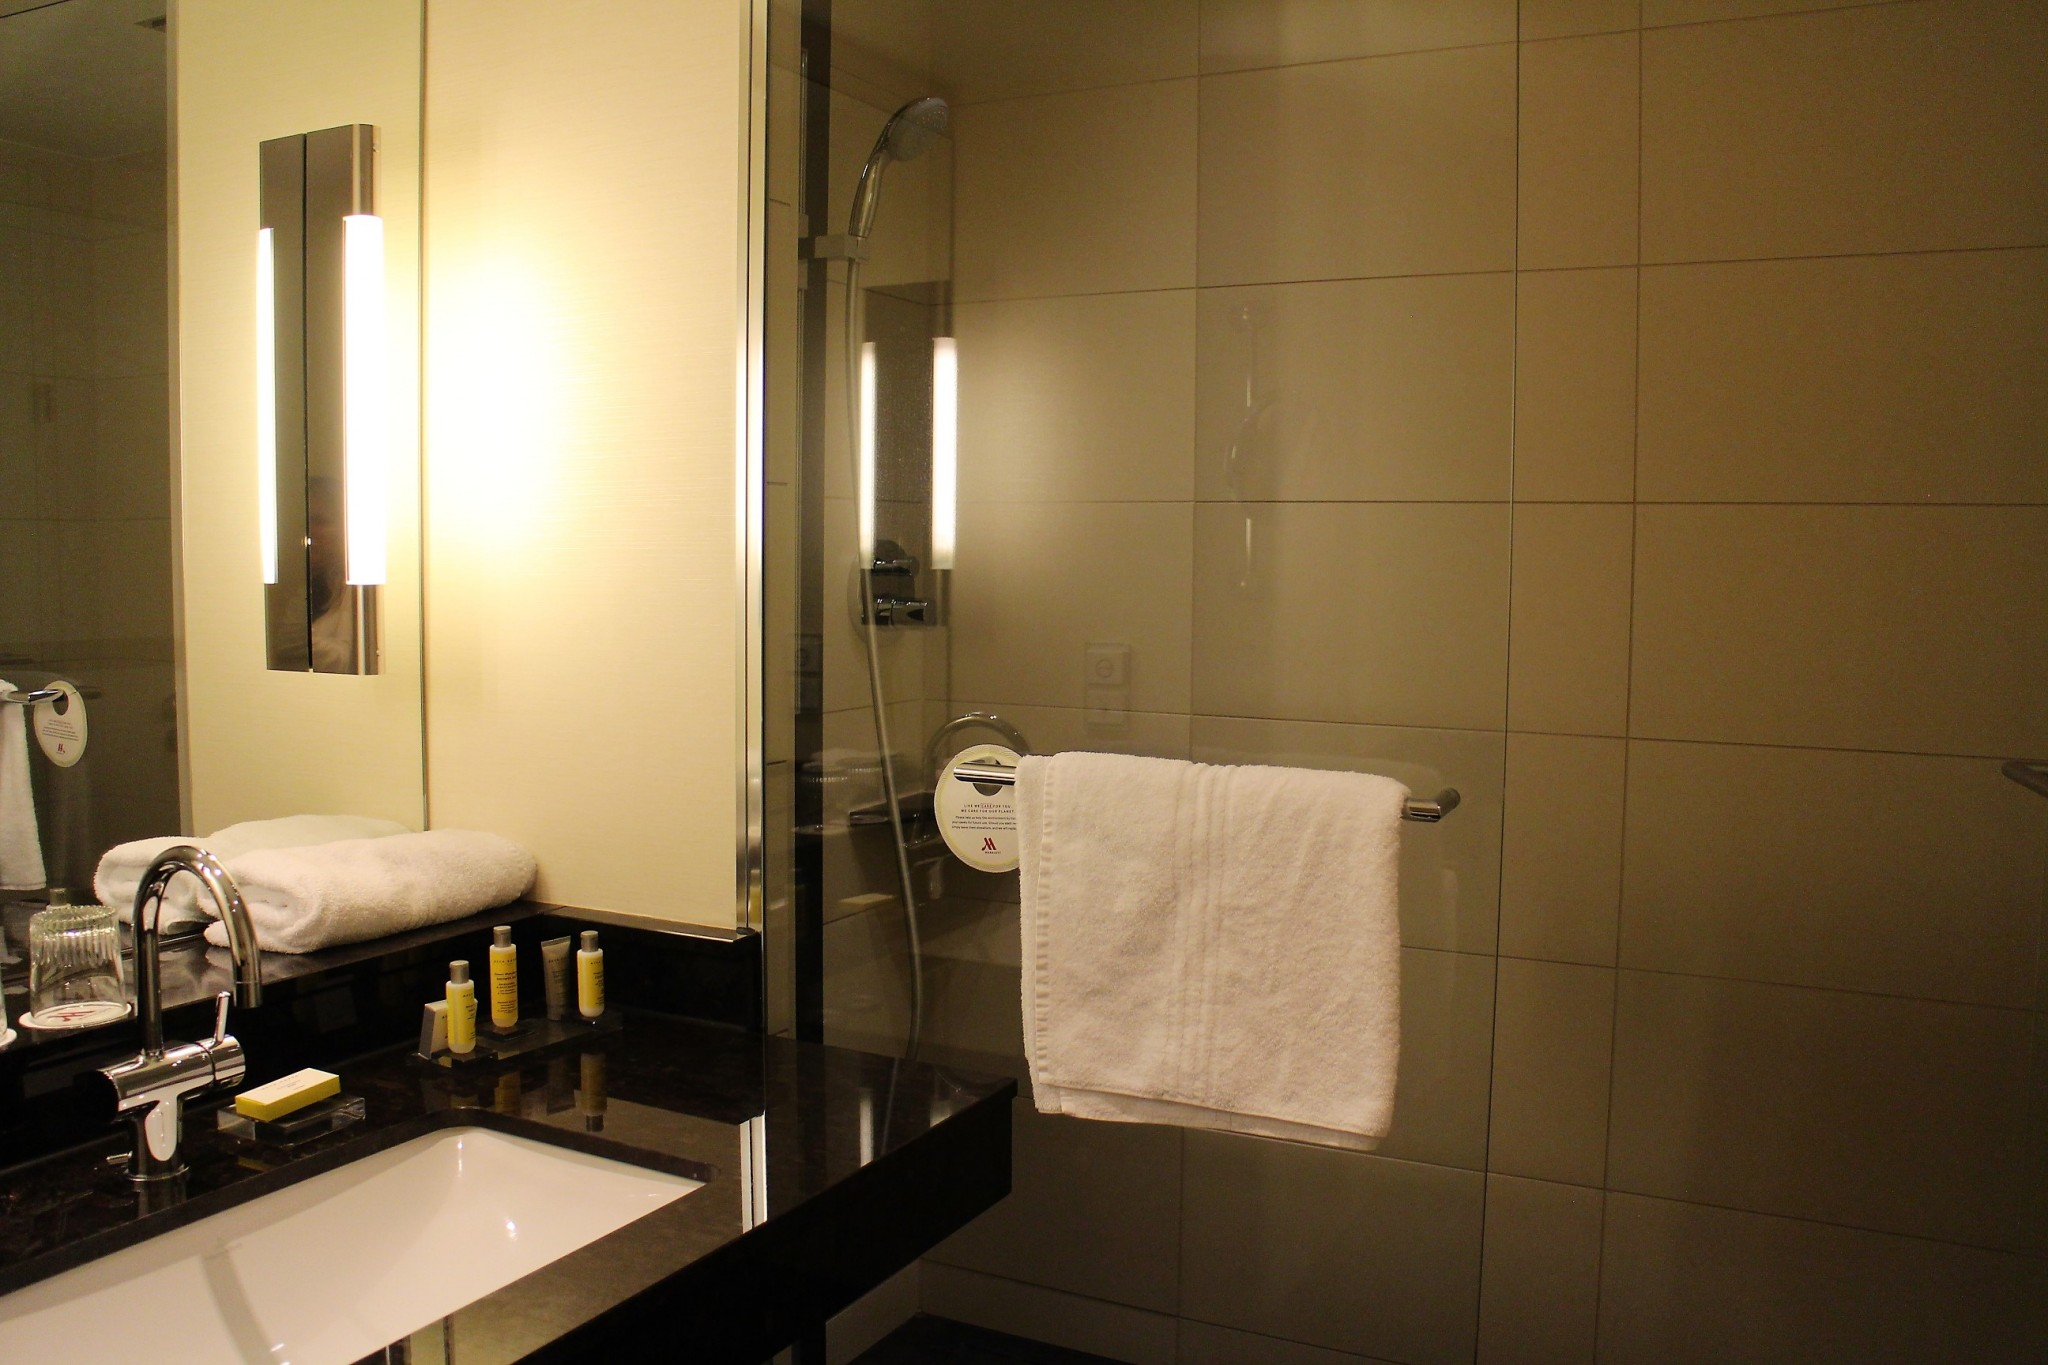 Berlin Marriott Bathroom 2